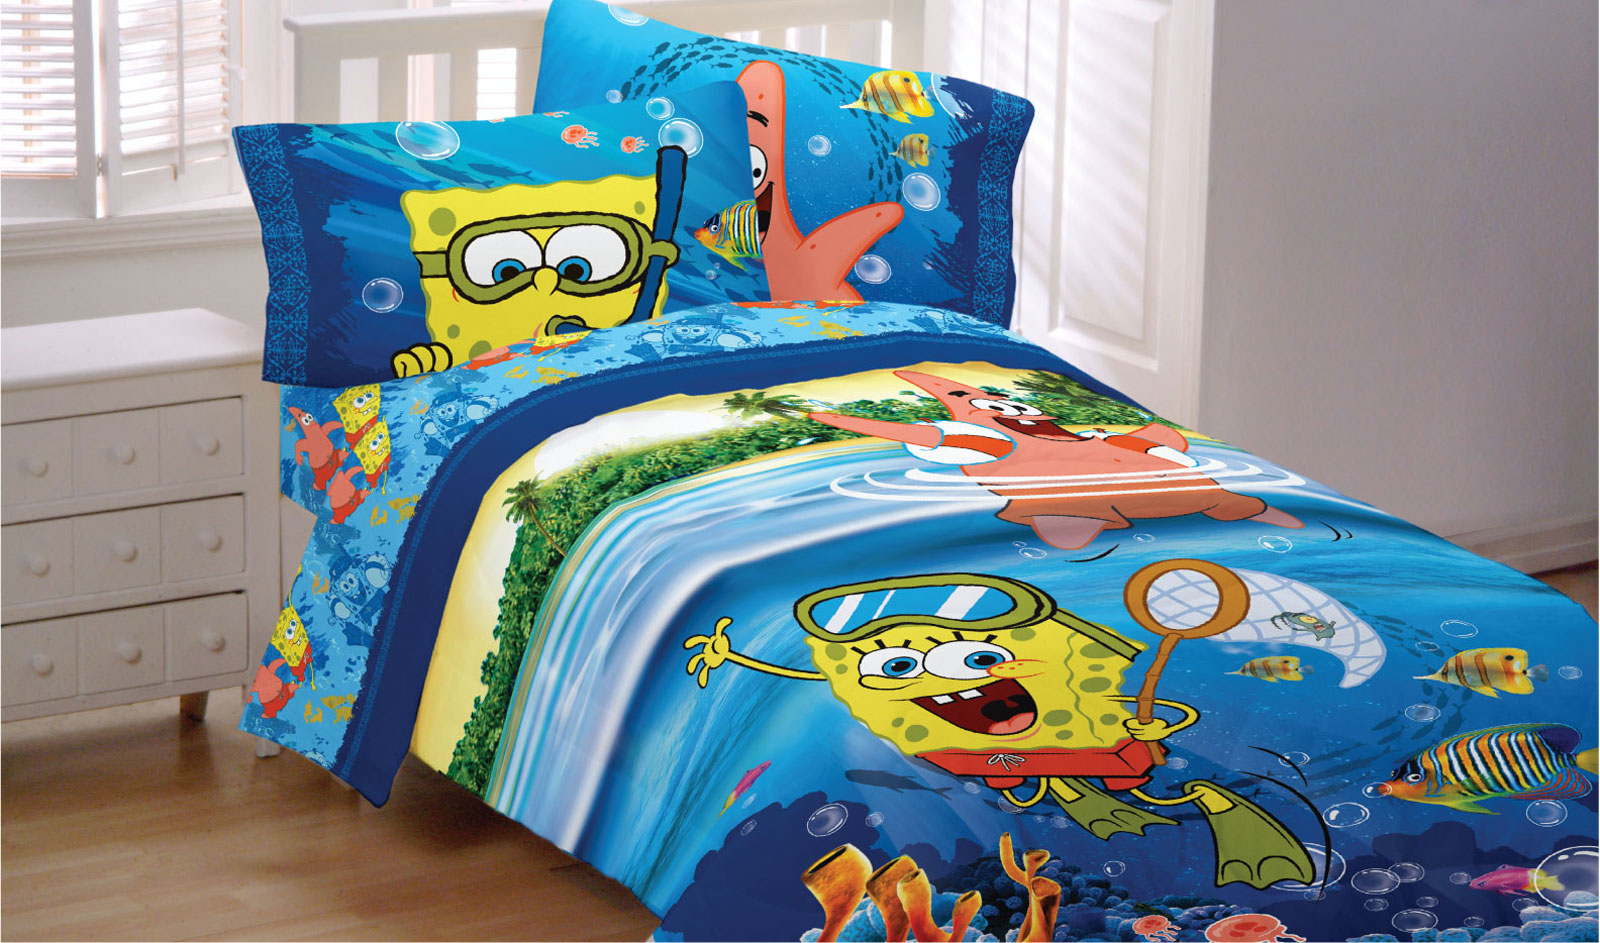 Spongebob Squarepants Twin Bed Comforter